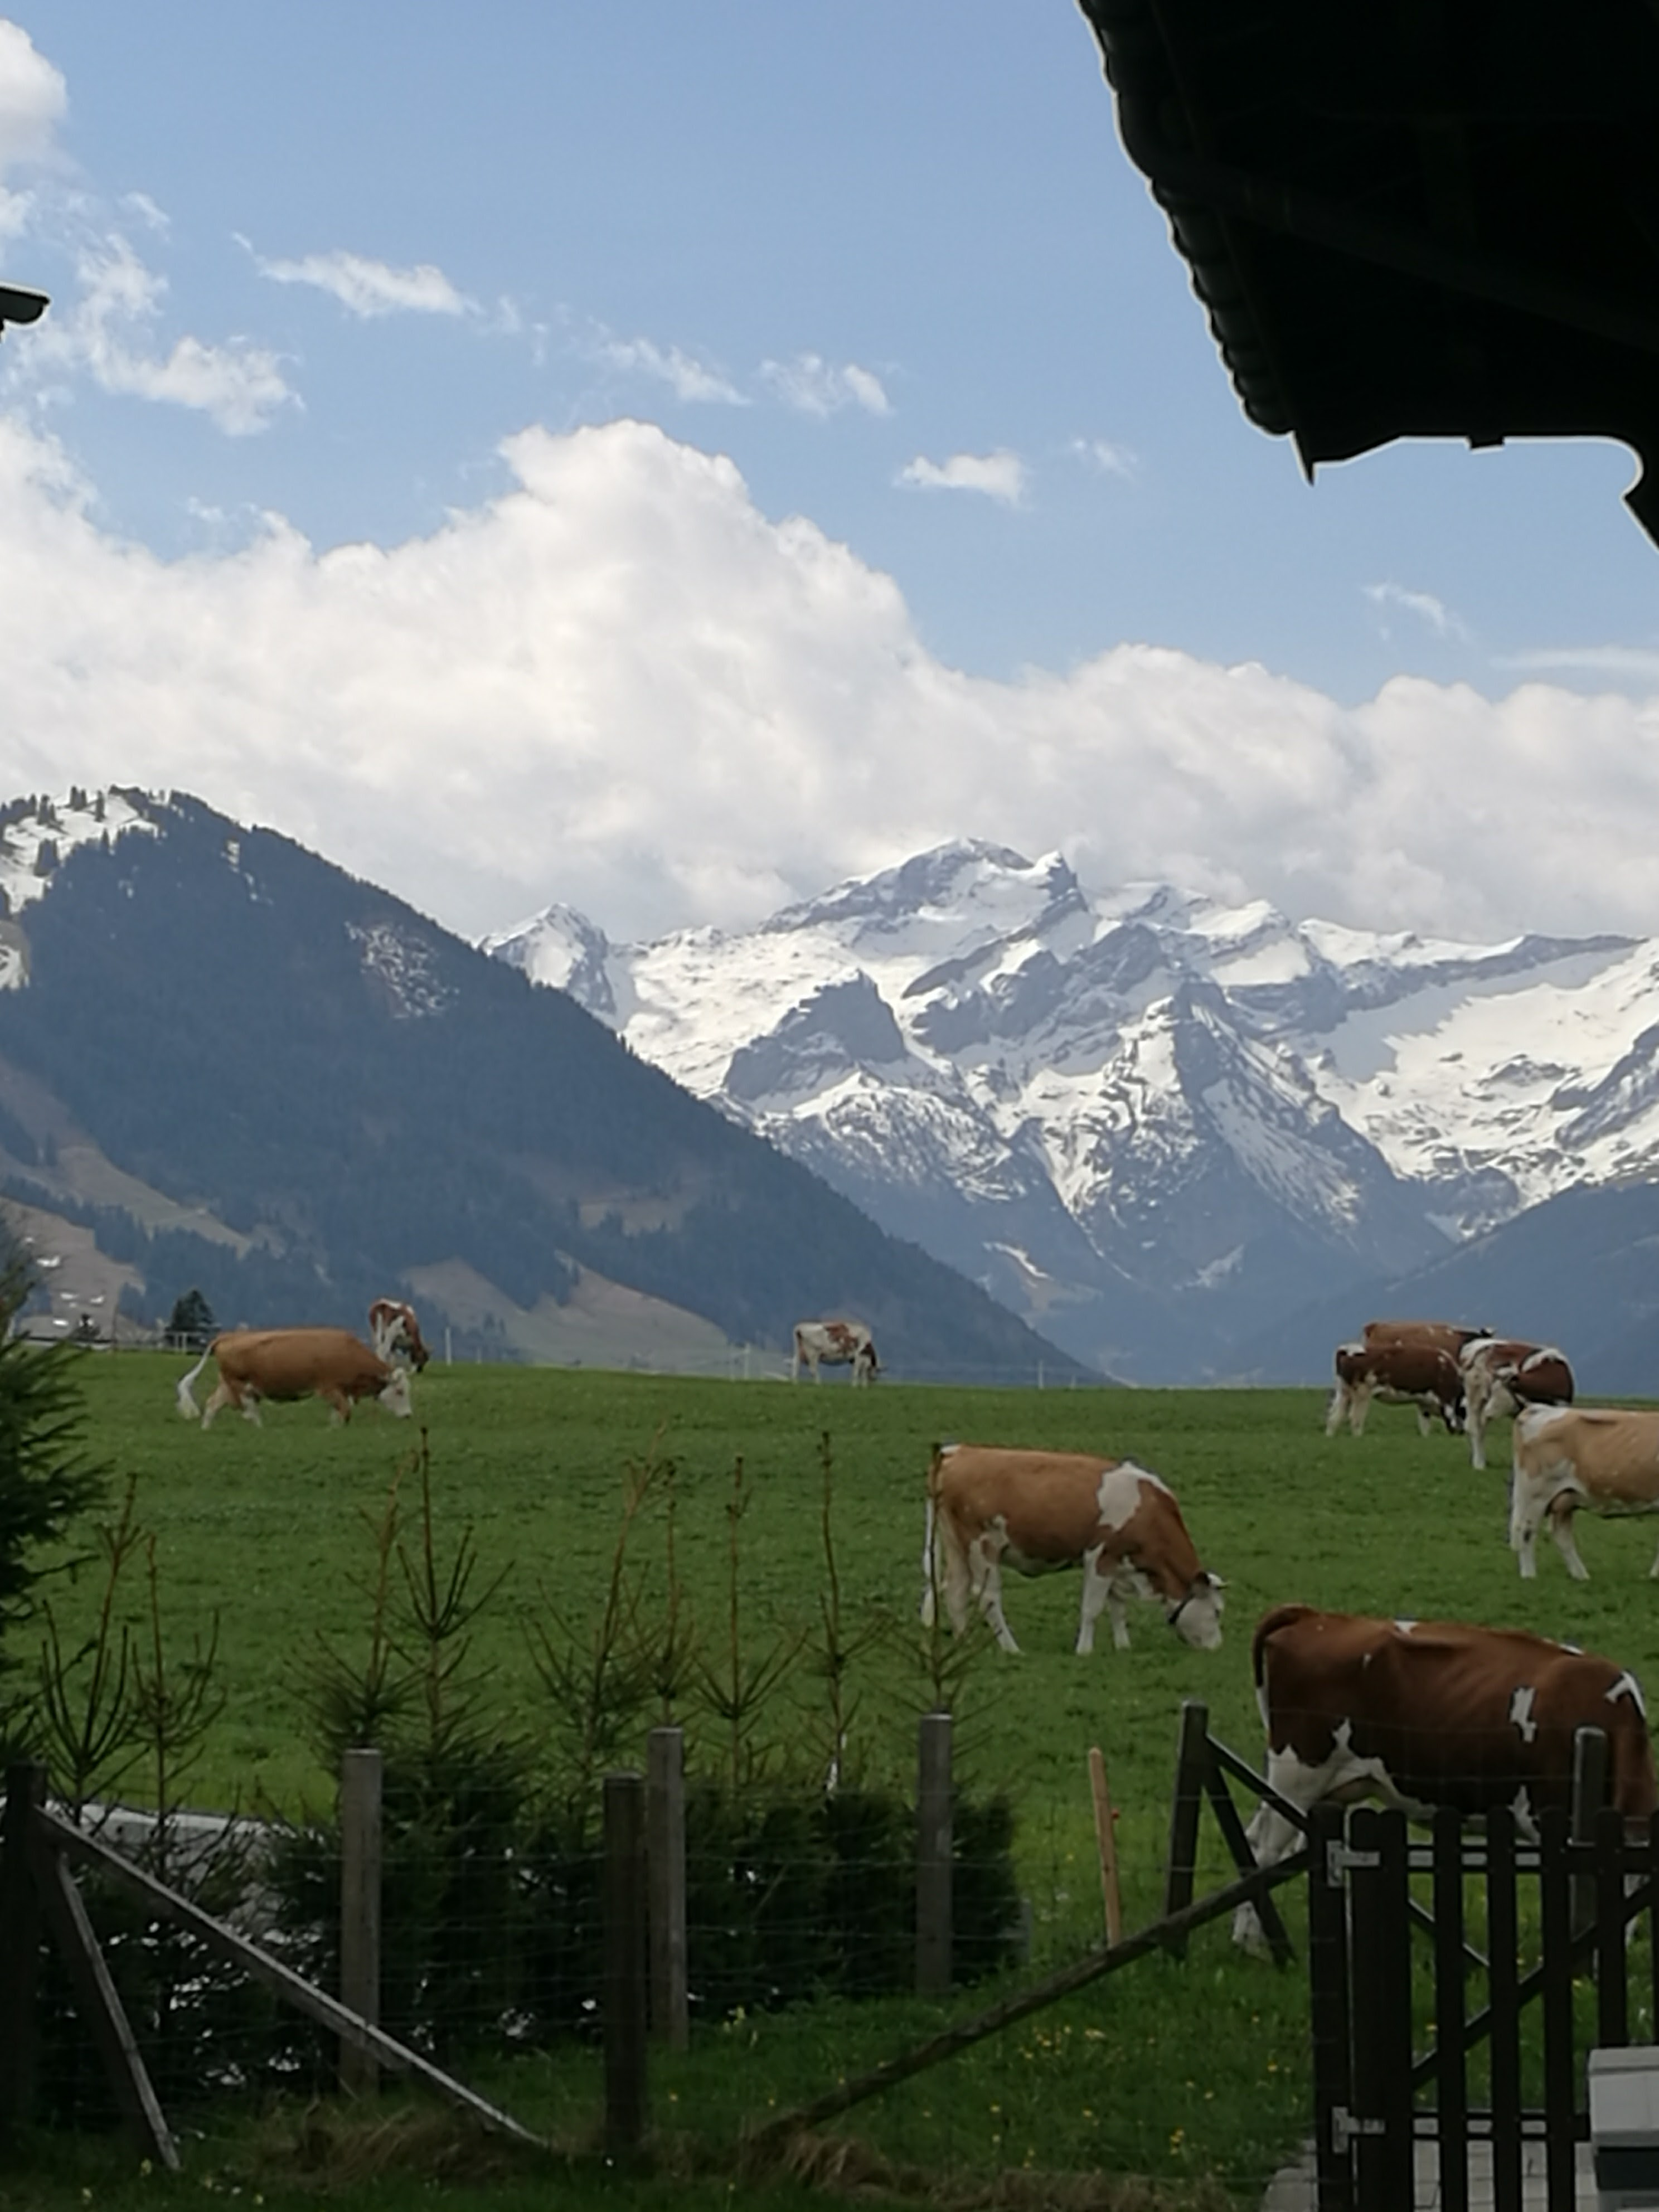 Some cows in a field near Gstaad